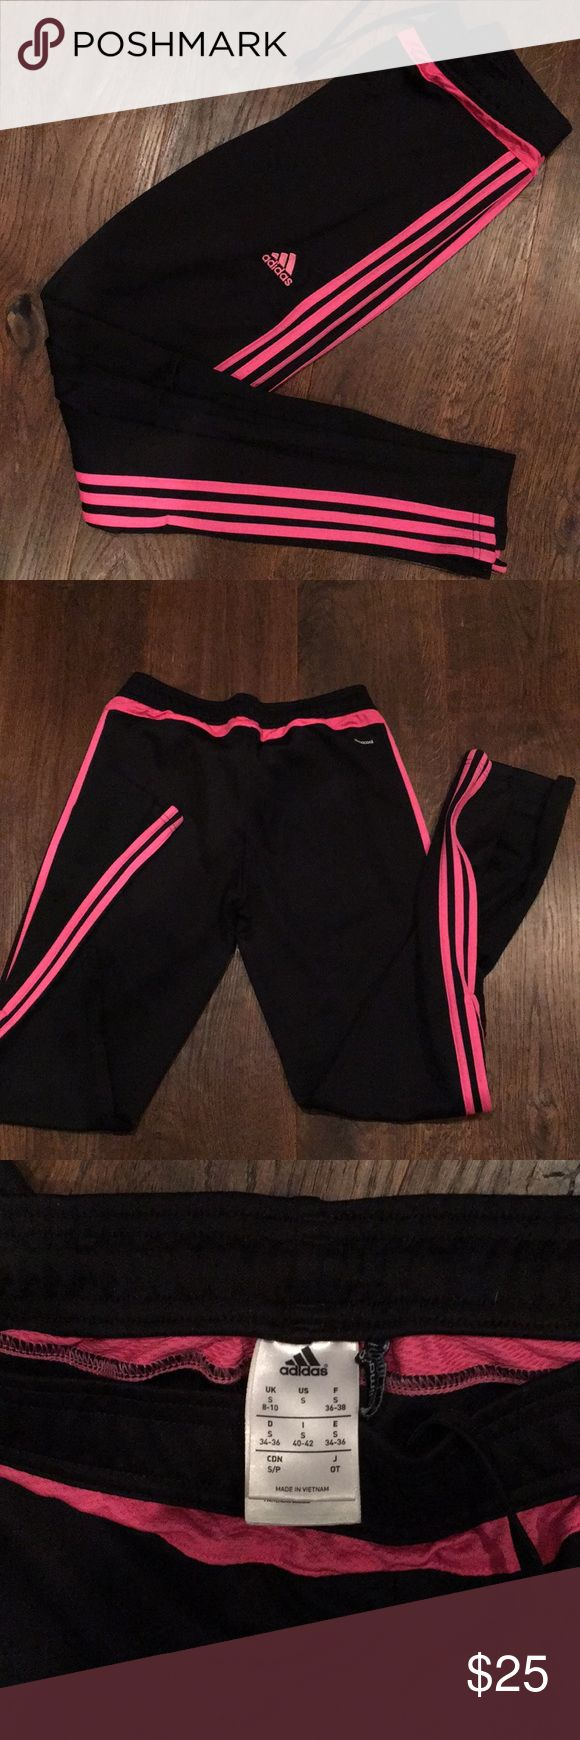 Adidas climacool tapered trainer pants black/pink Adidas climacool tapered trainer pants black/pink like new adidas Pants Track Pants & Joggers